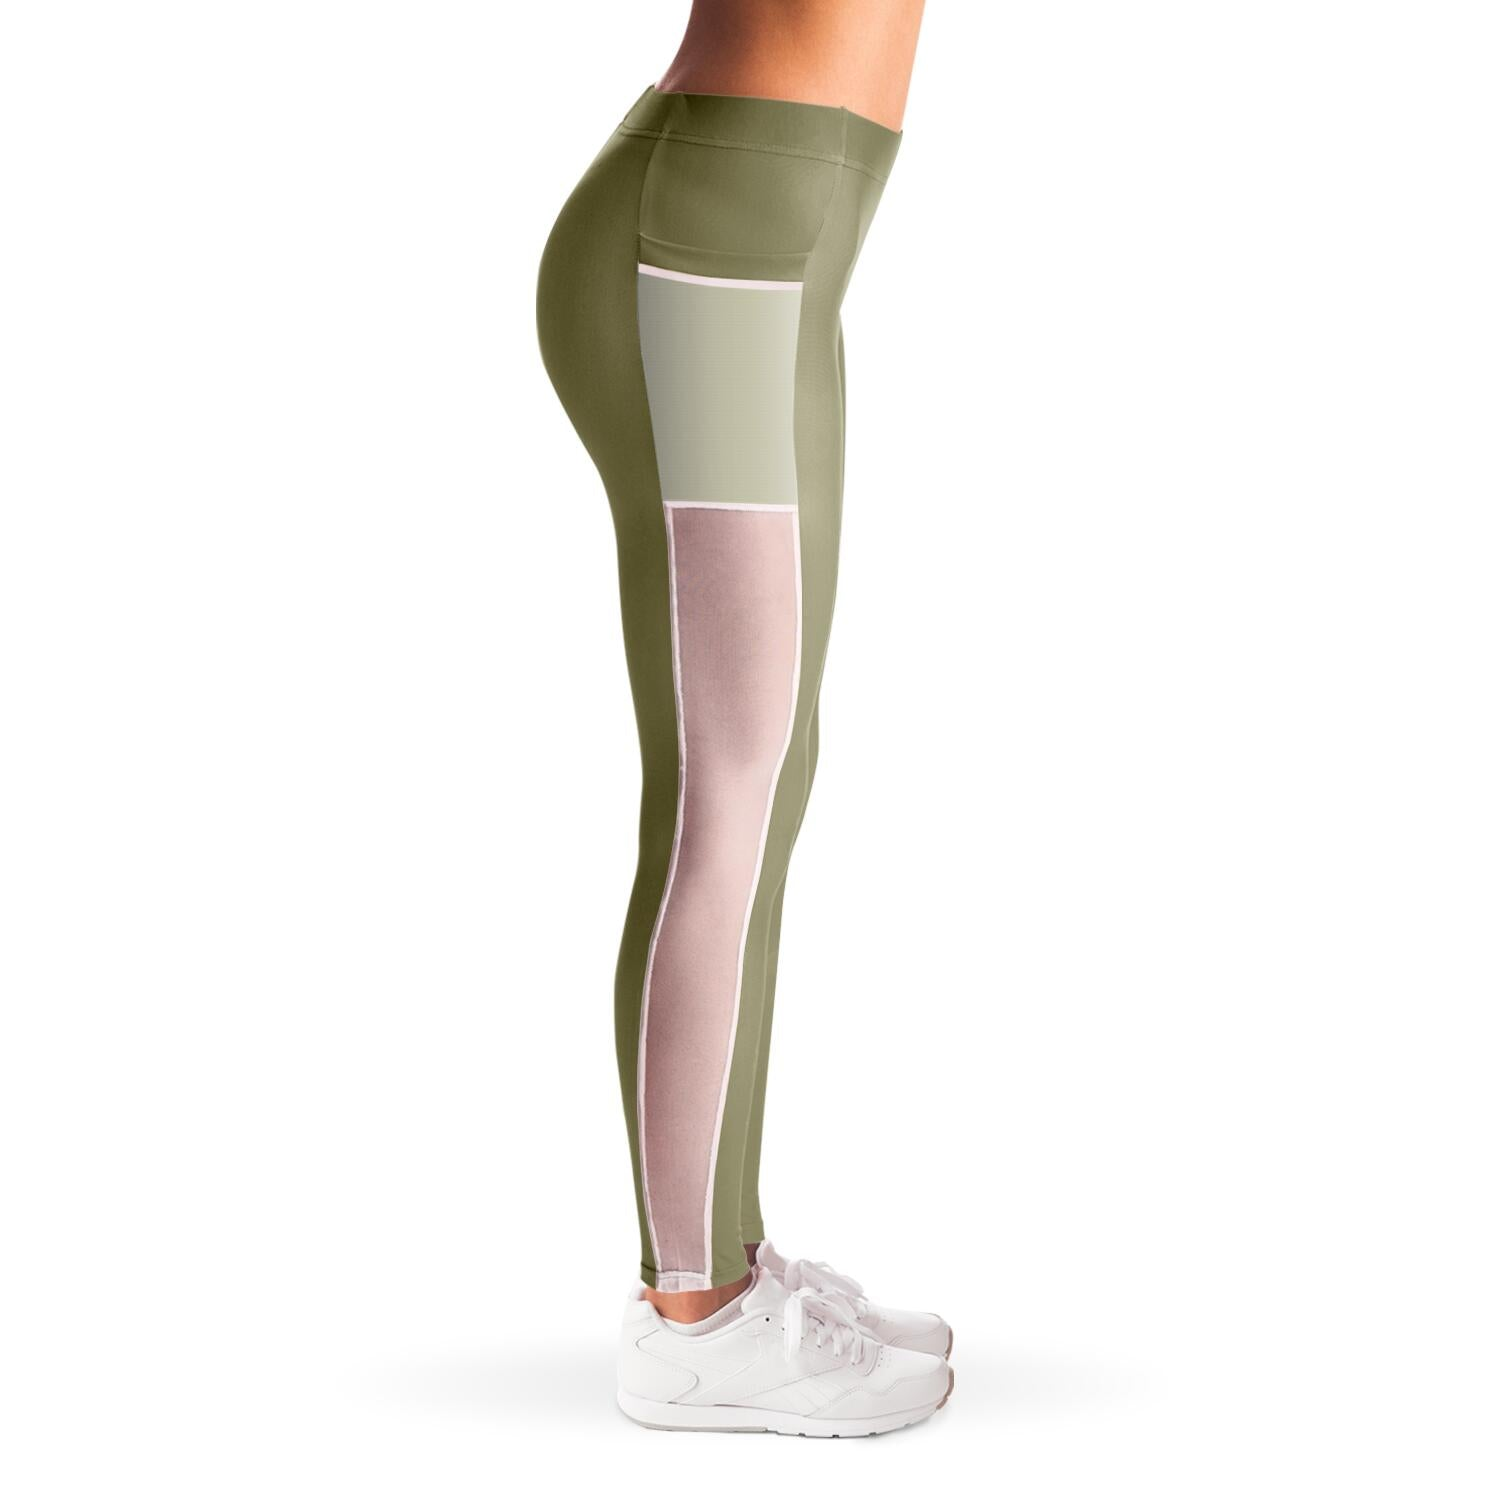 Basic Moss green yoga pants with mesh